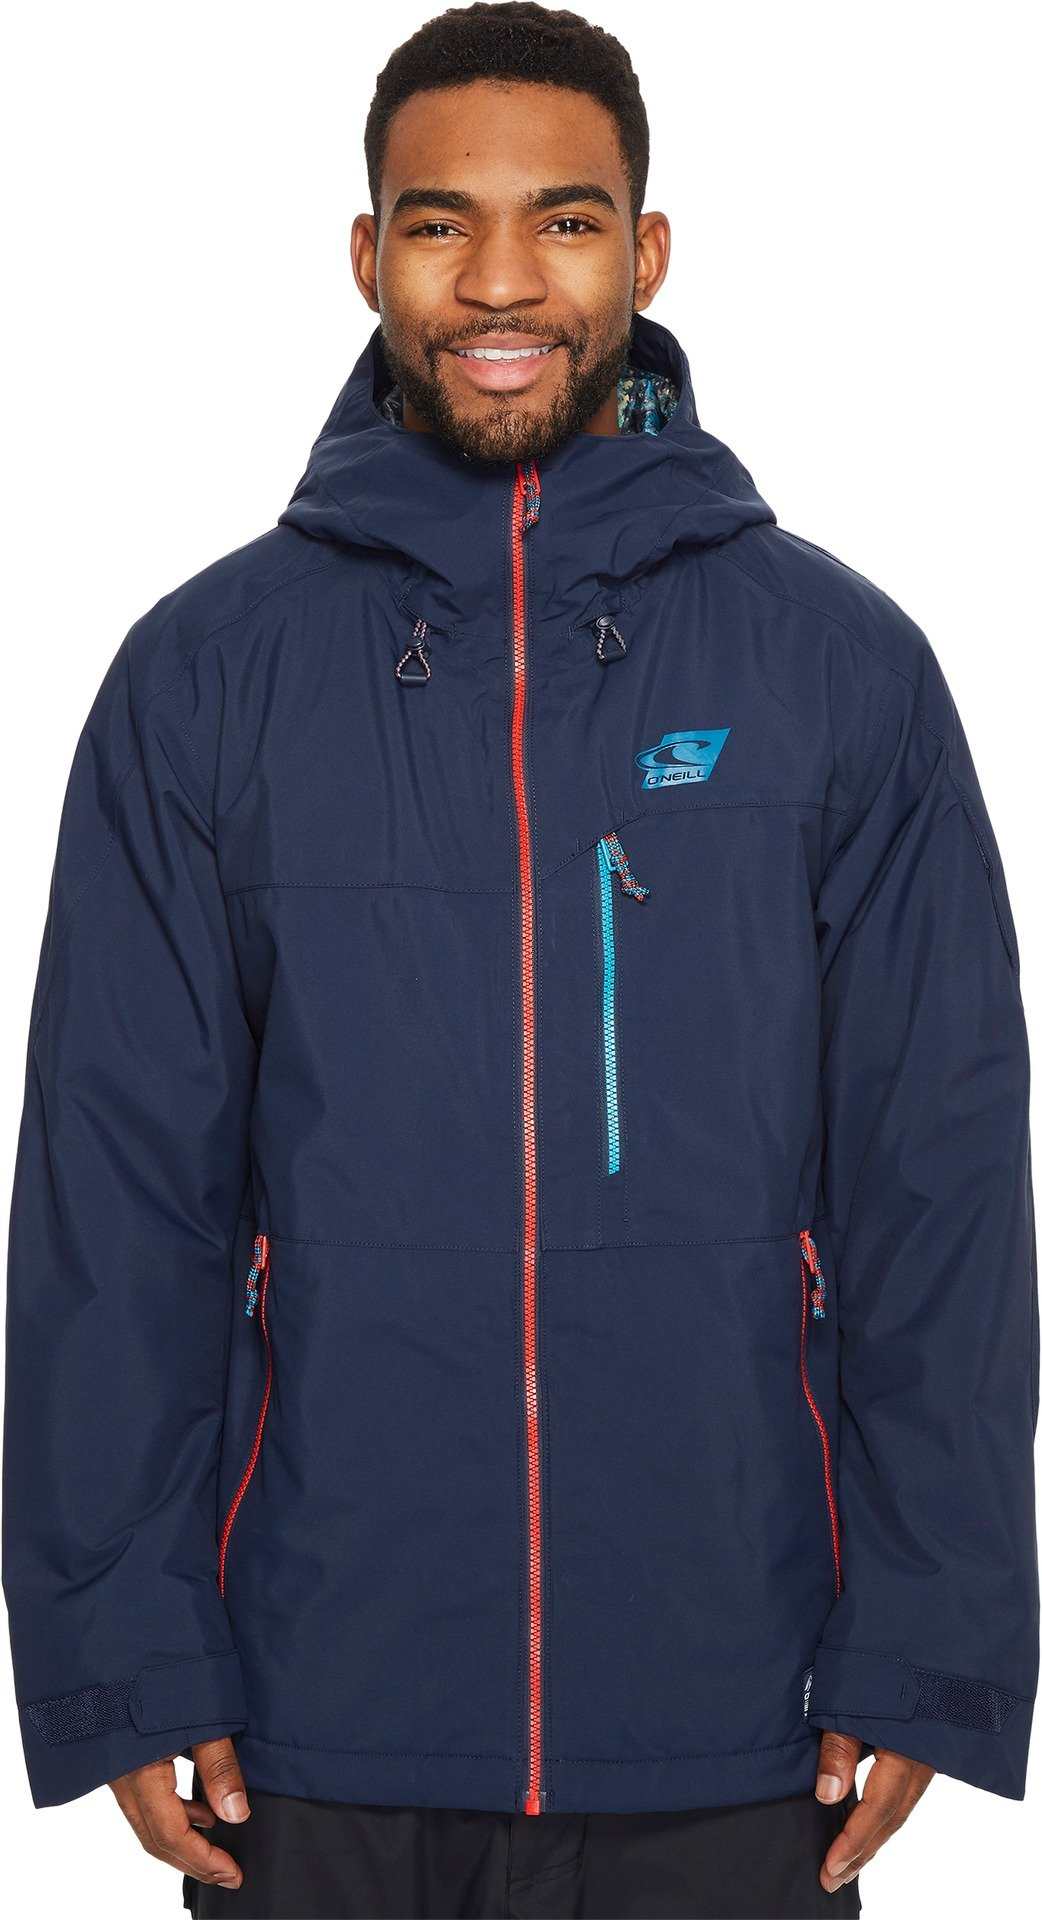 O'Neill Men's Exile Jacket, Ink Blue, Large by O'Neill